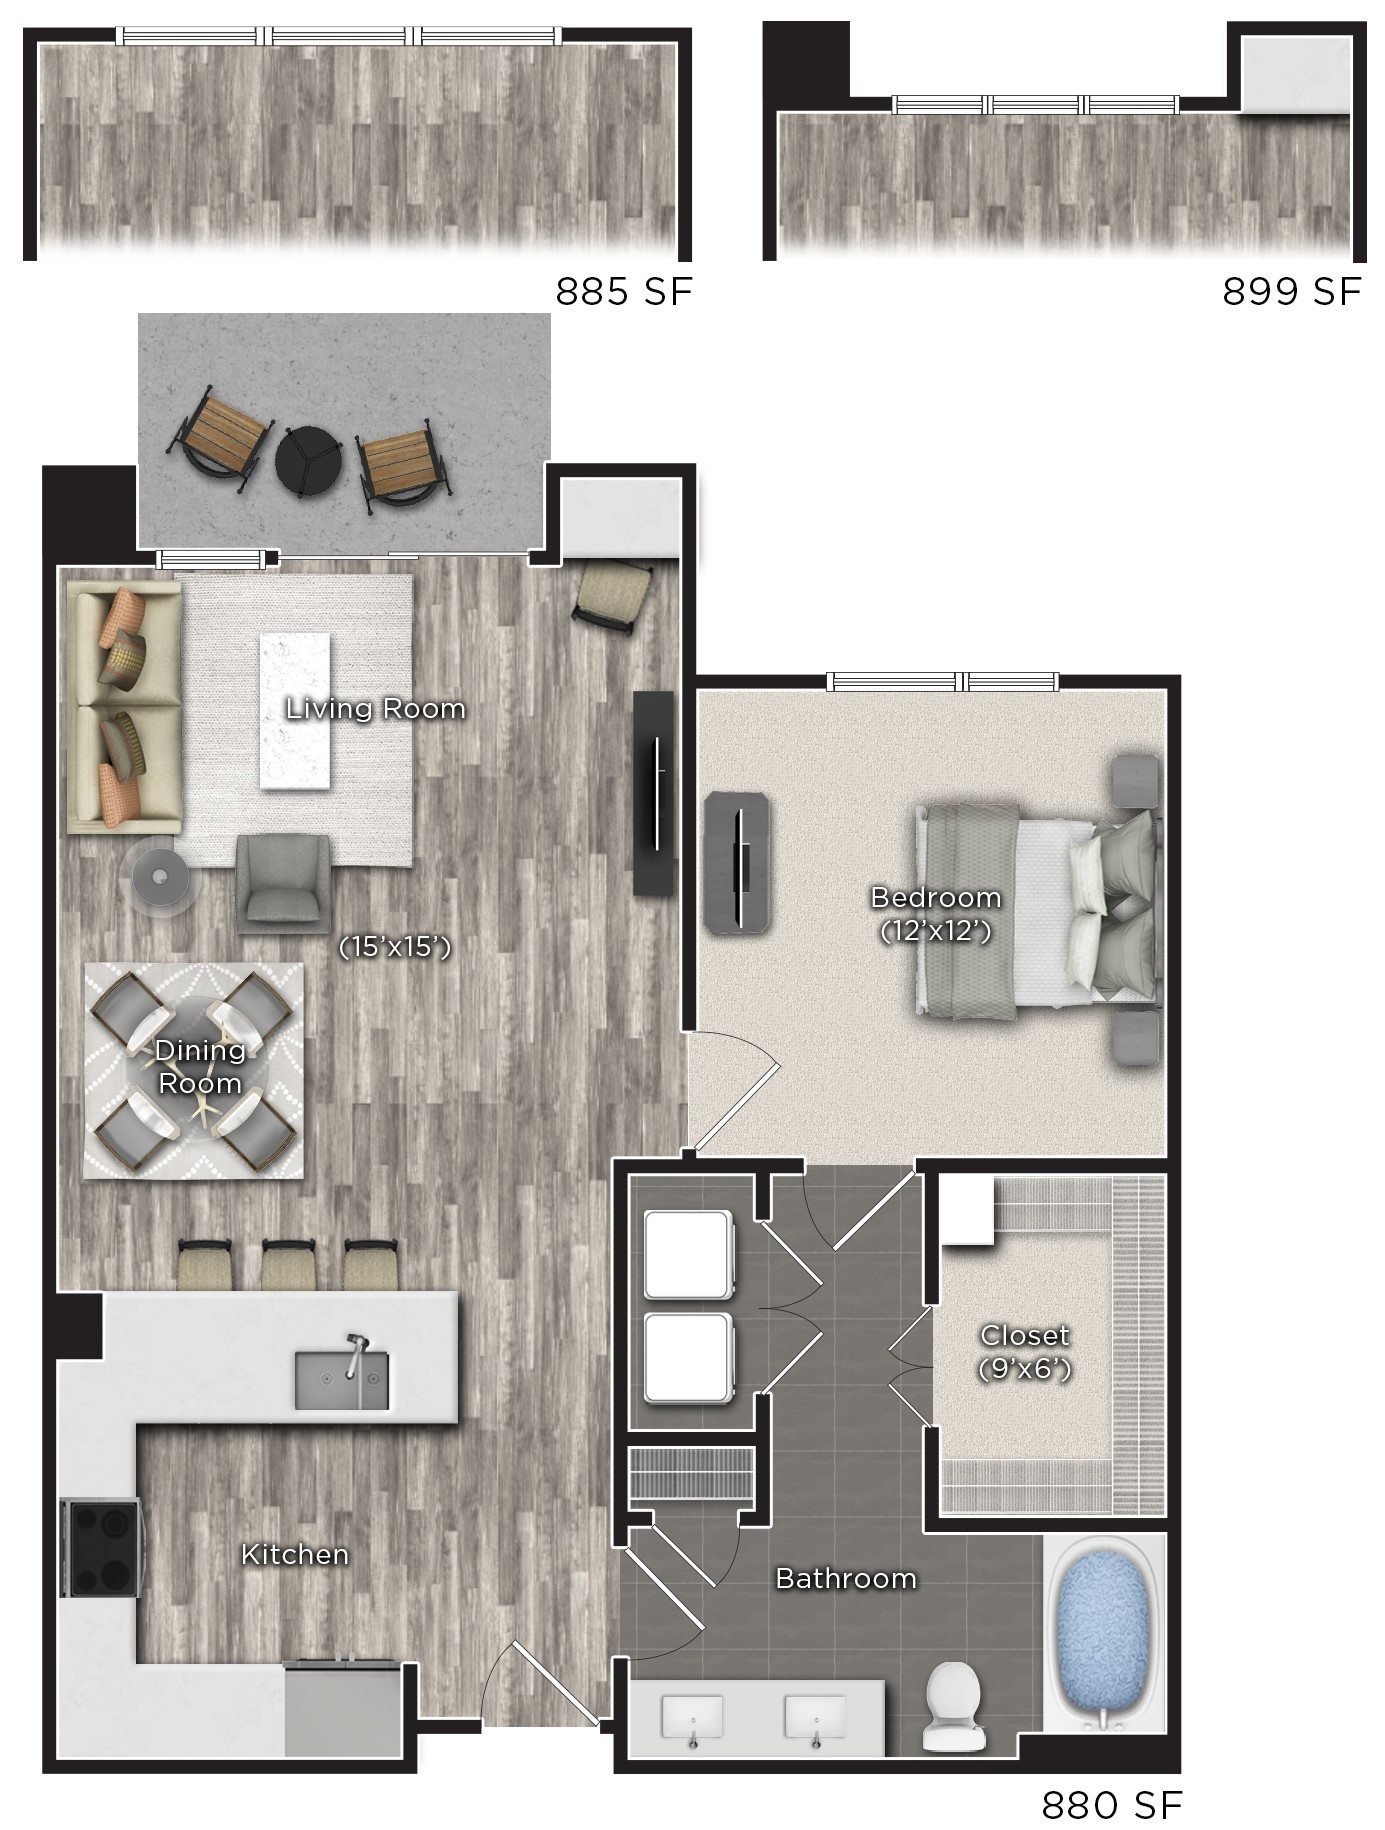 Tens on West - Floorplan - I